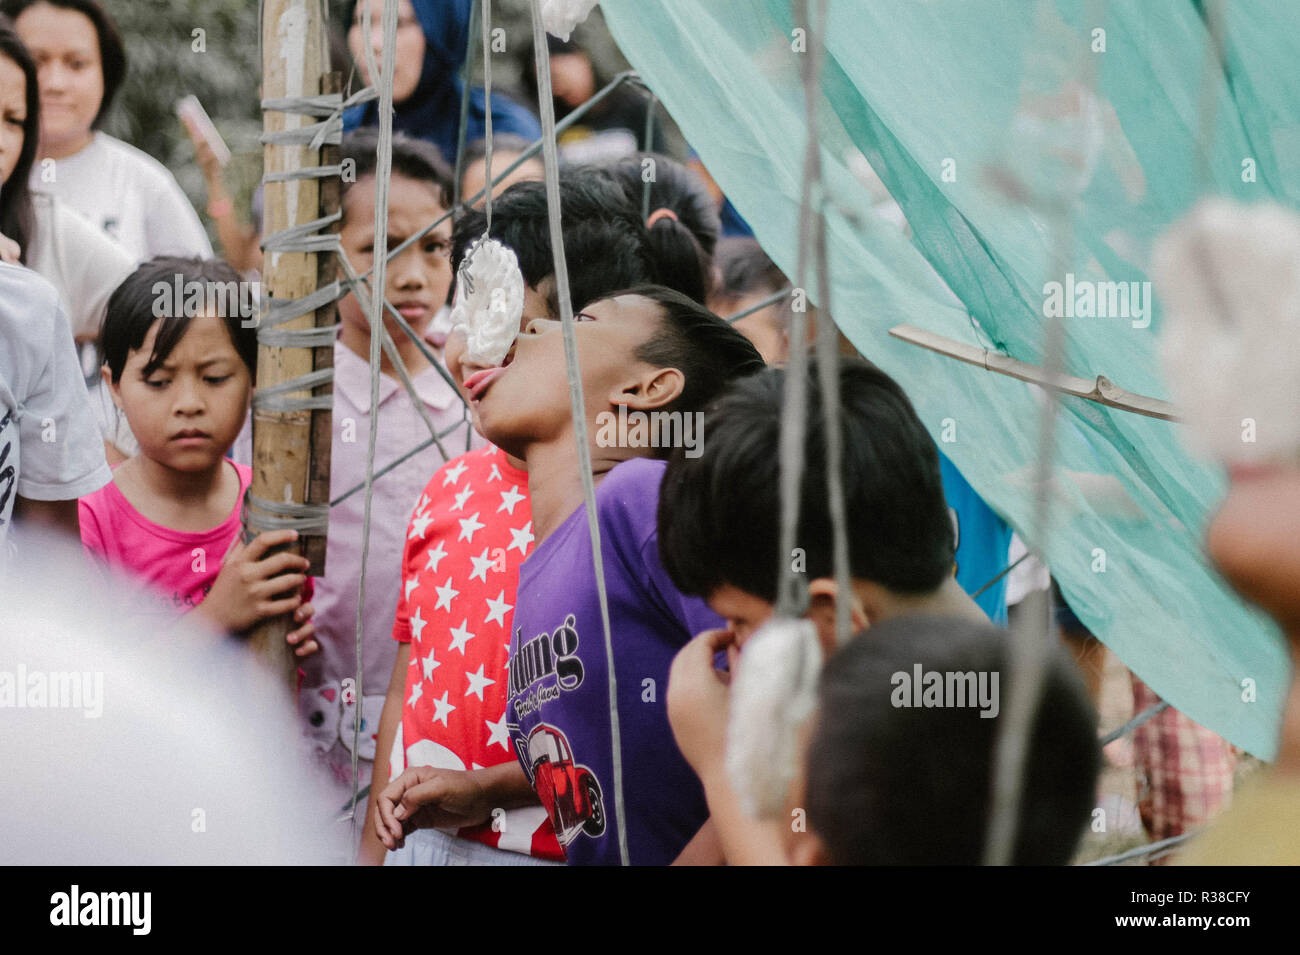 independence day indonesia - Stock Image